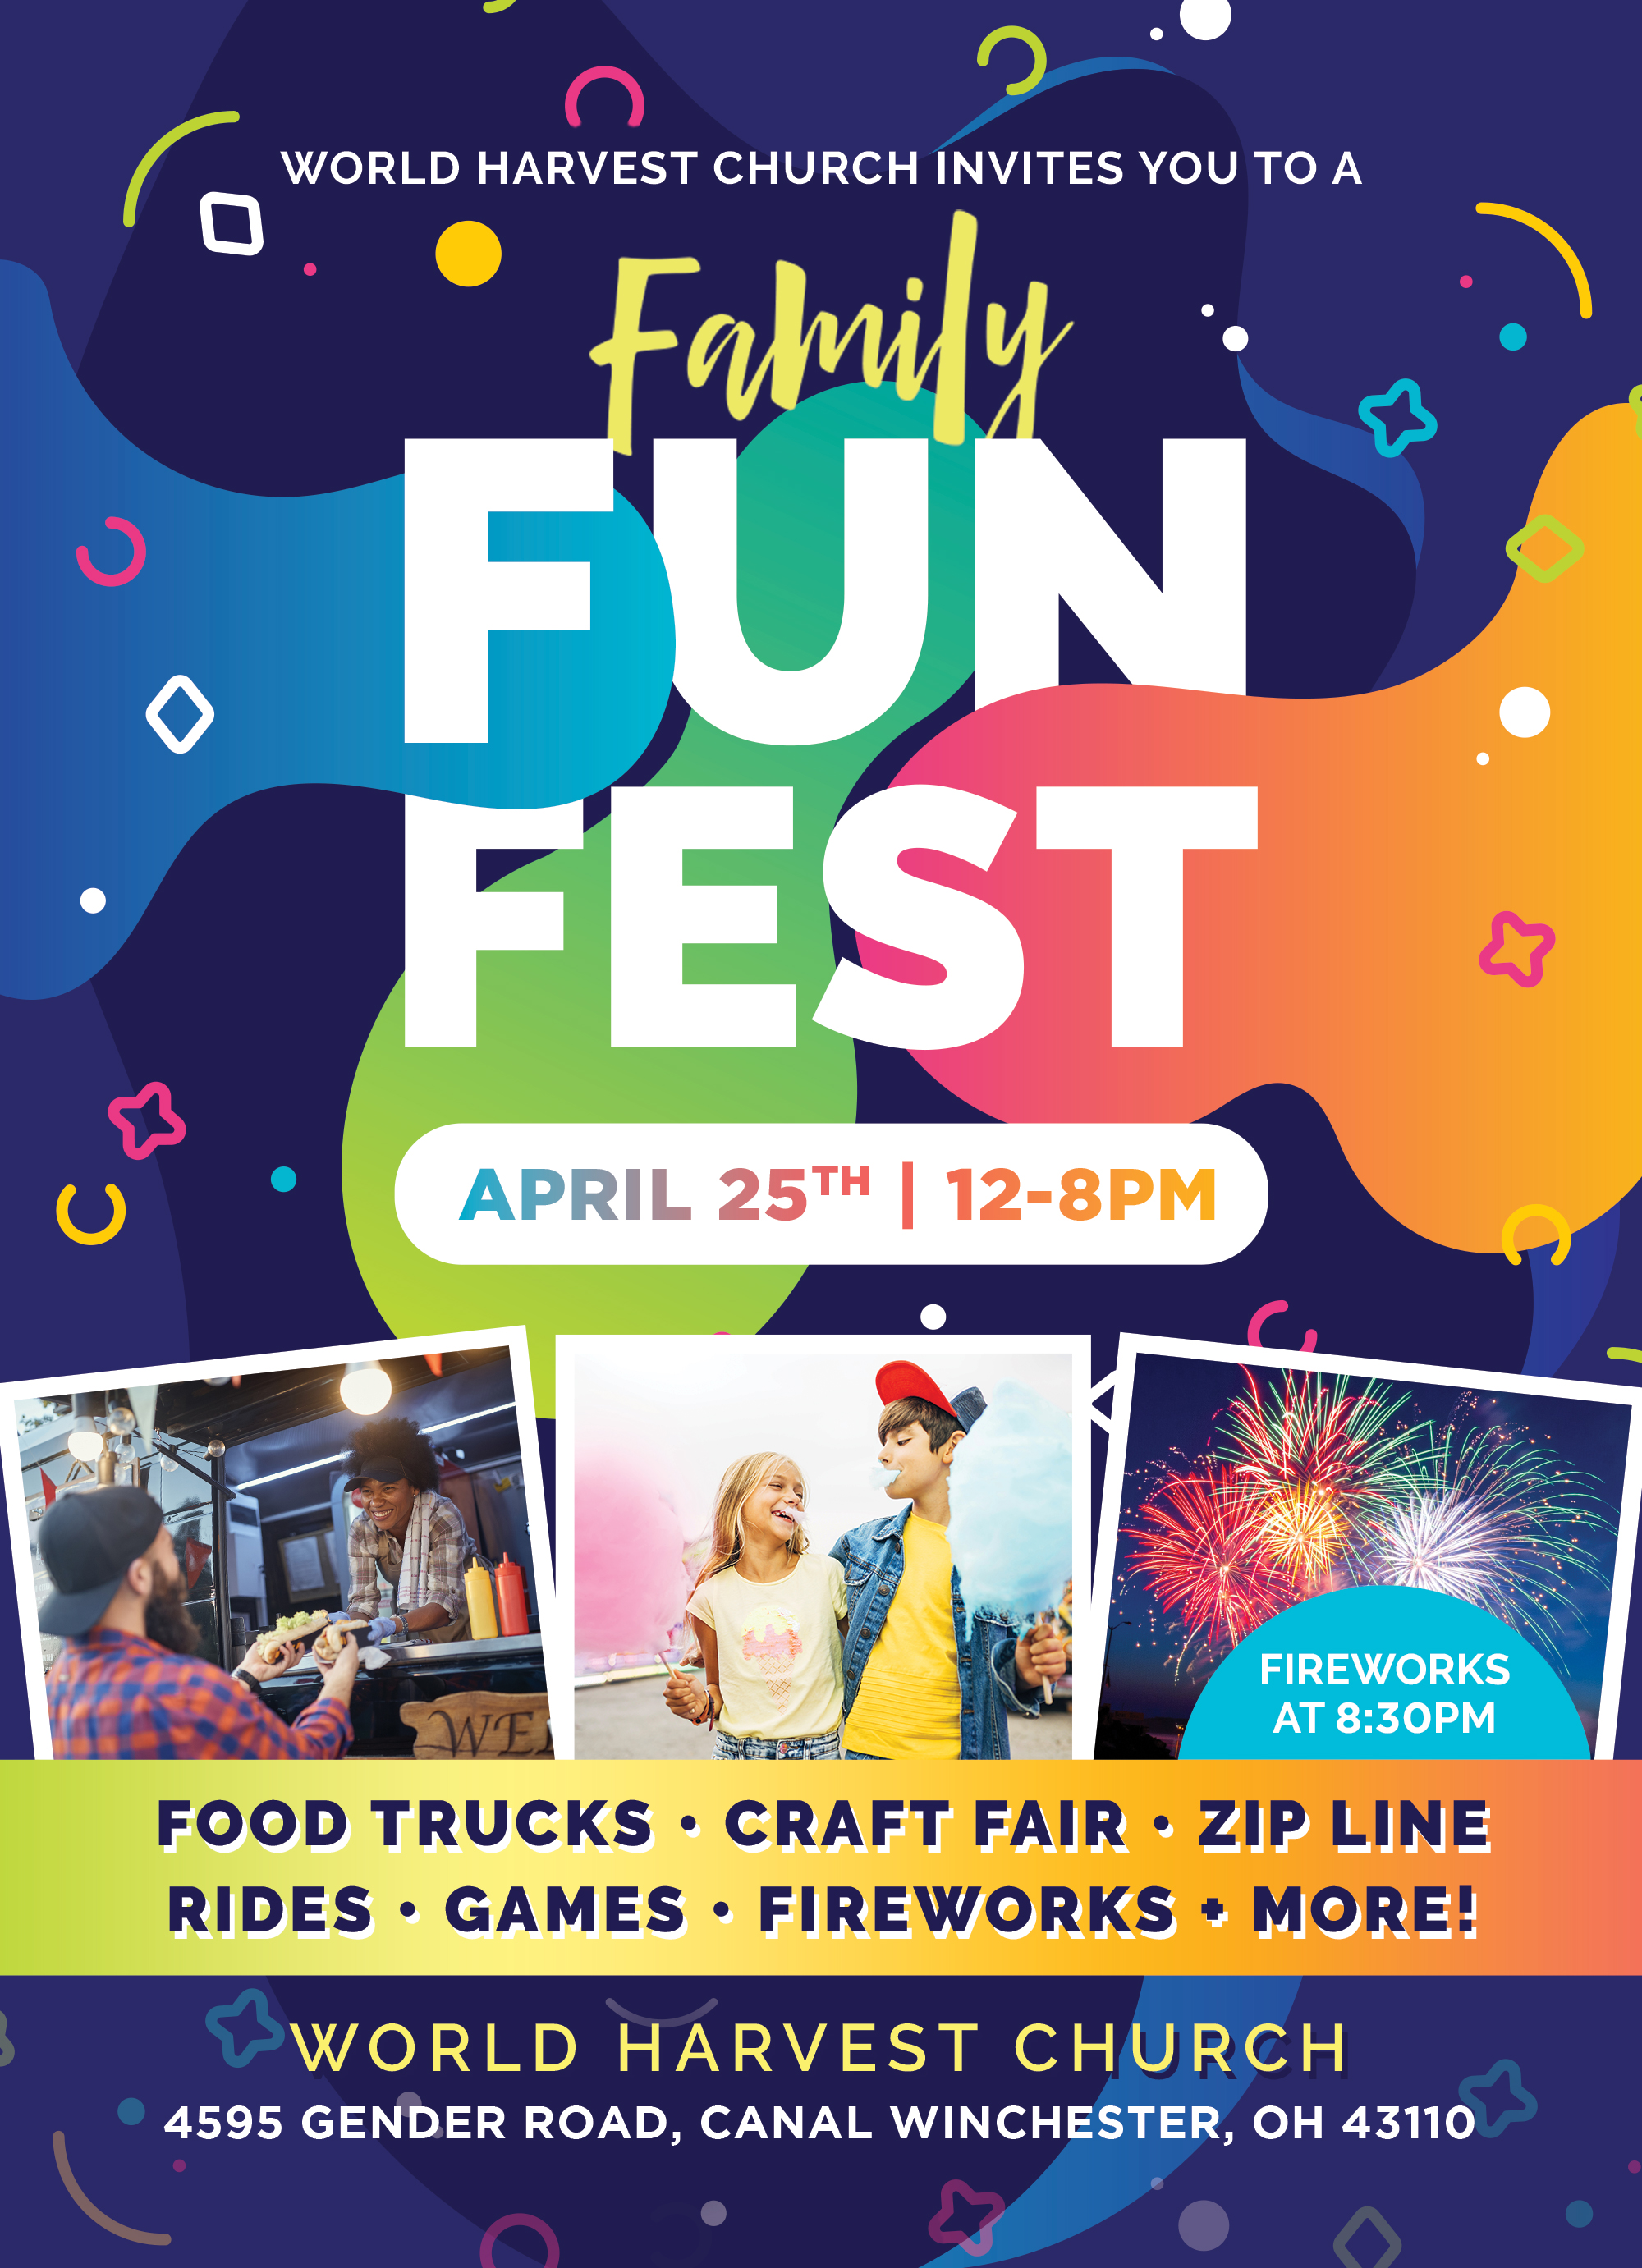 World Harvest Church Invites You to a Family Fun Fest April 11th 12- 8 Pm Food Trucks Craft Fair Zipline Rides Games Fireworks More! World Harvest Church 4595 Gender Road, Canal Winchester, Oh 43110